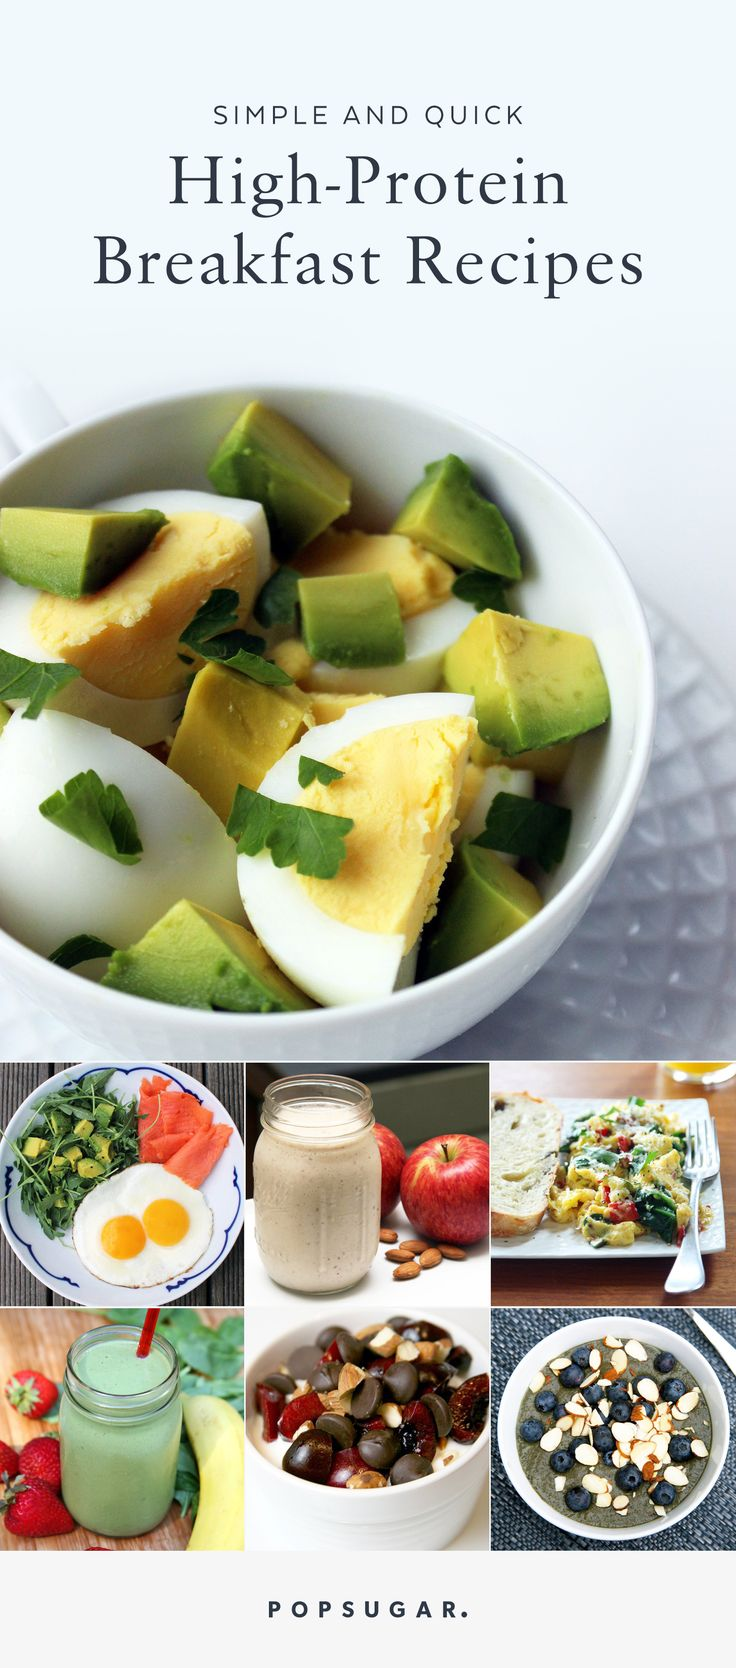 A healthy, high-protein meal can still be made on even the craziest of days. These 21 meals all contain at least 15 grams of protein and take well under 10 minutes to prep.